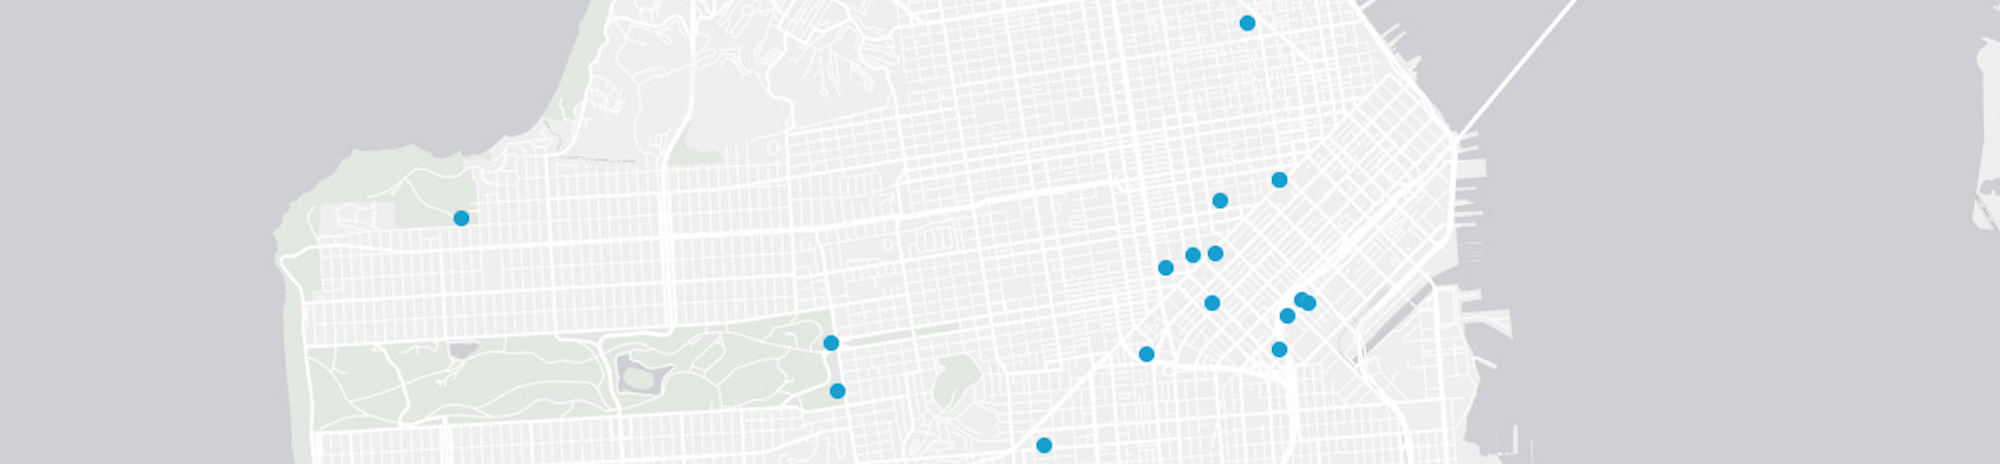 Map of Projects in San Francisco